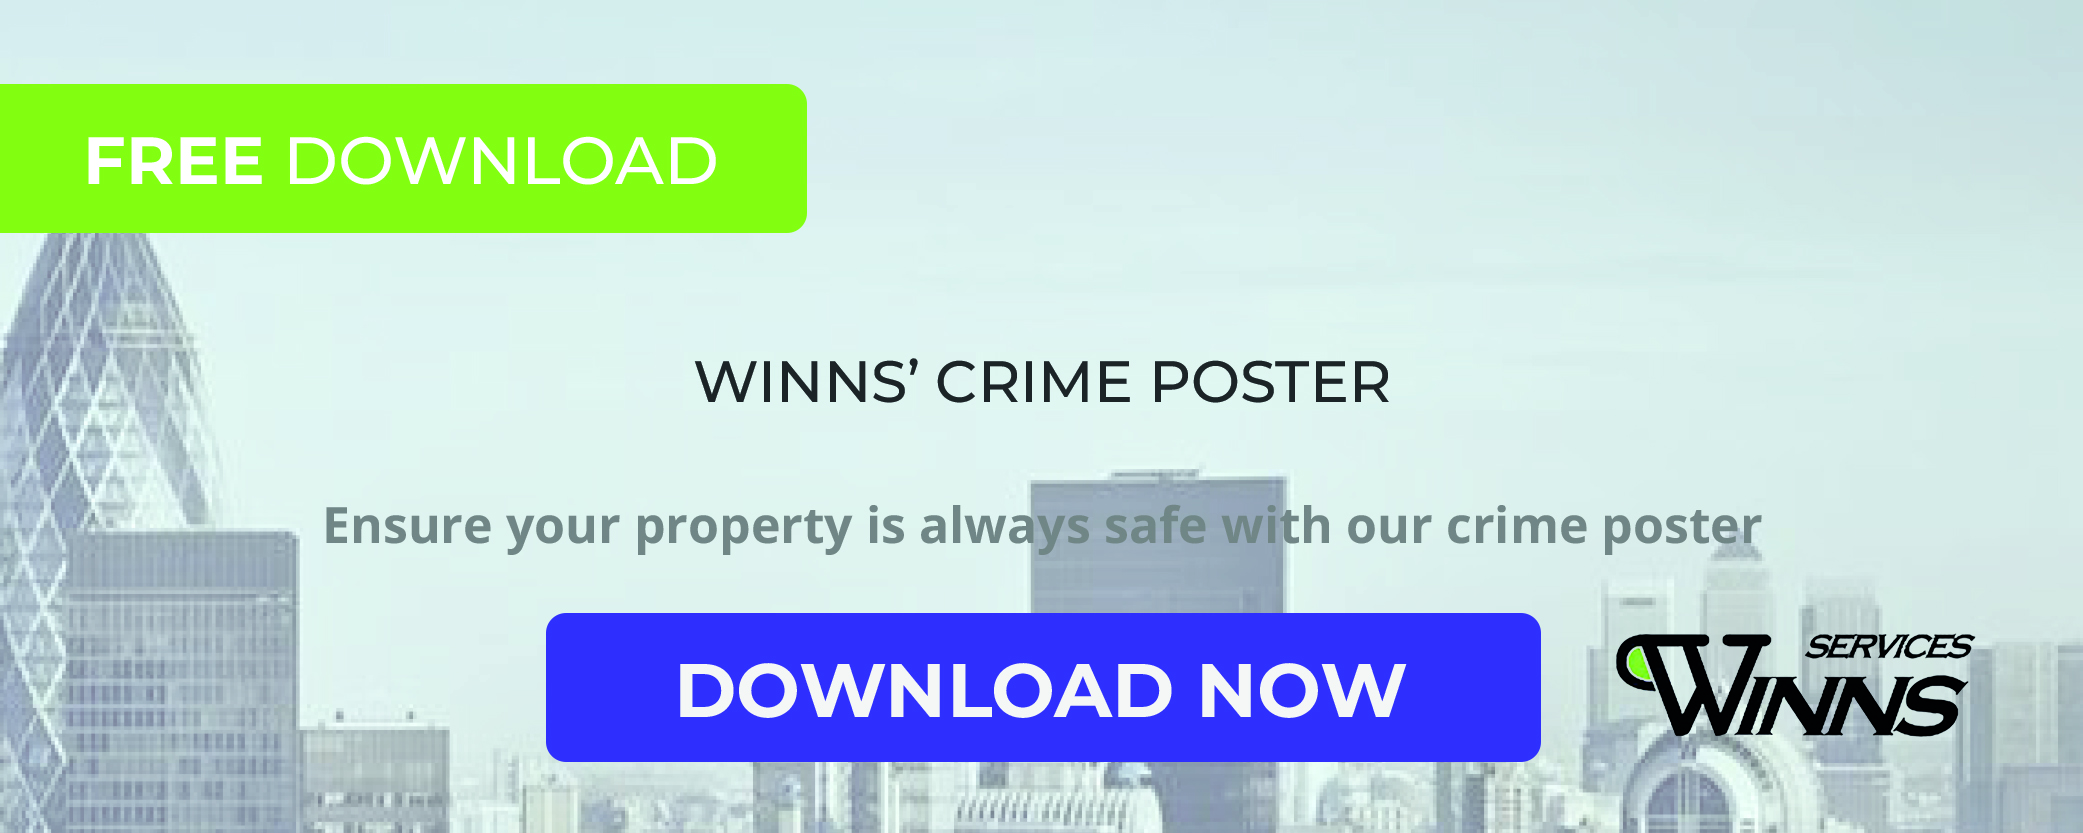 WINNS crime poster